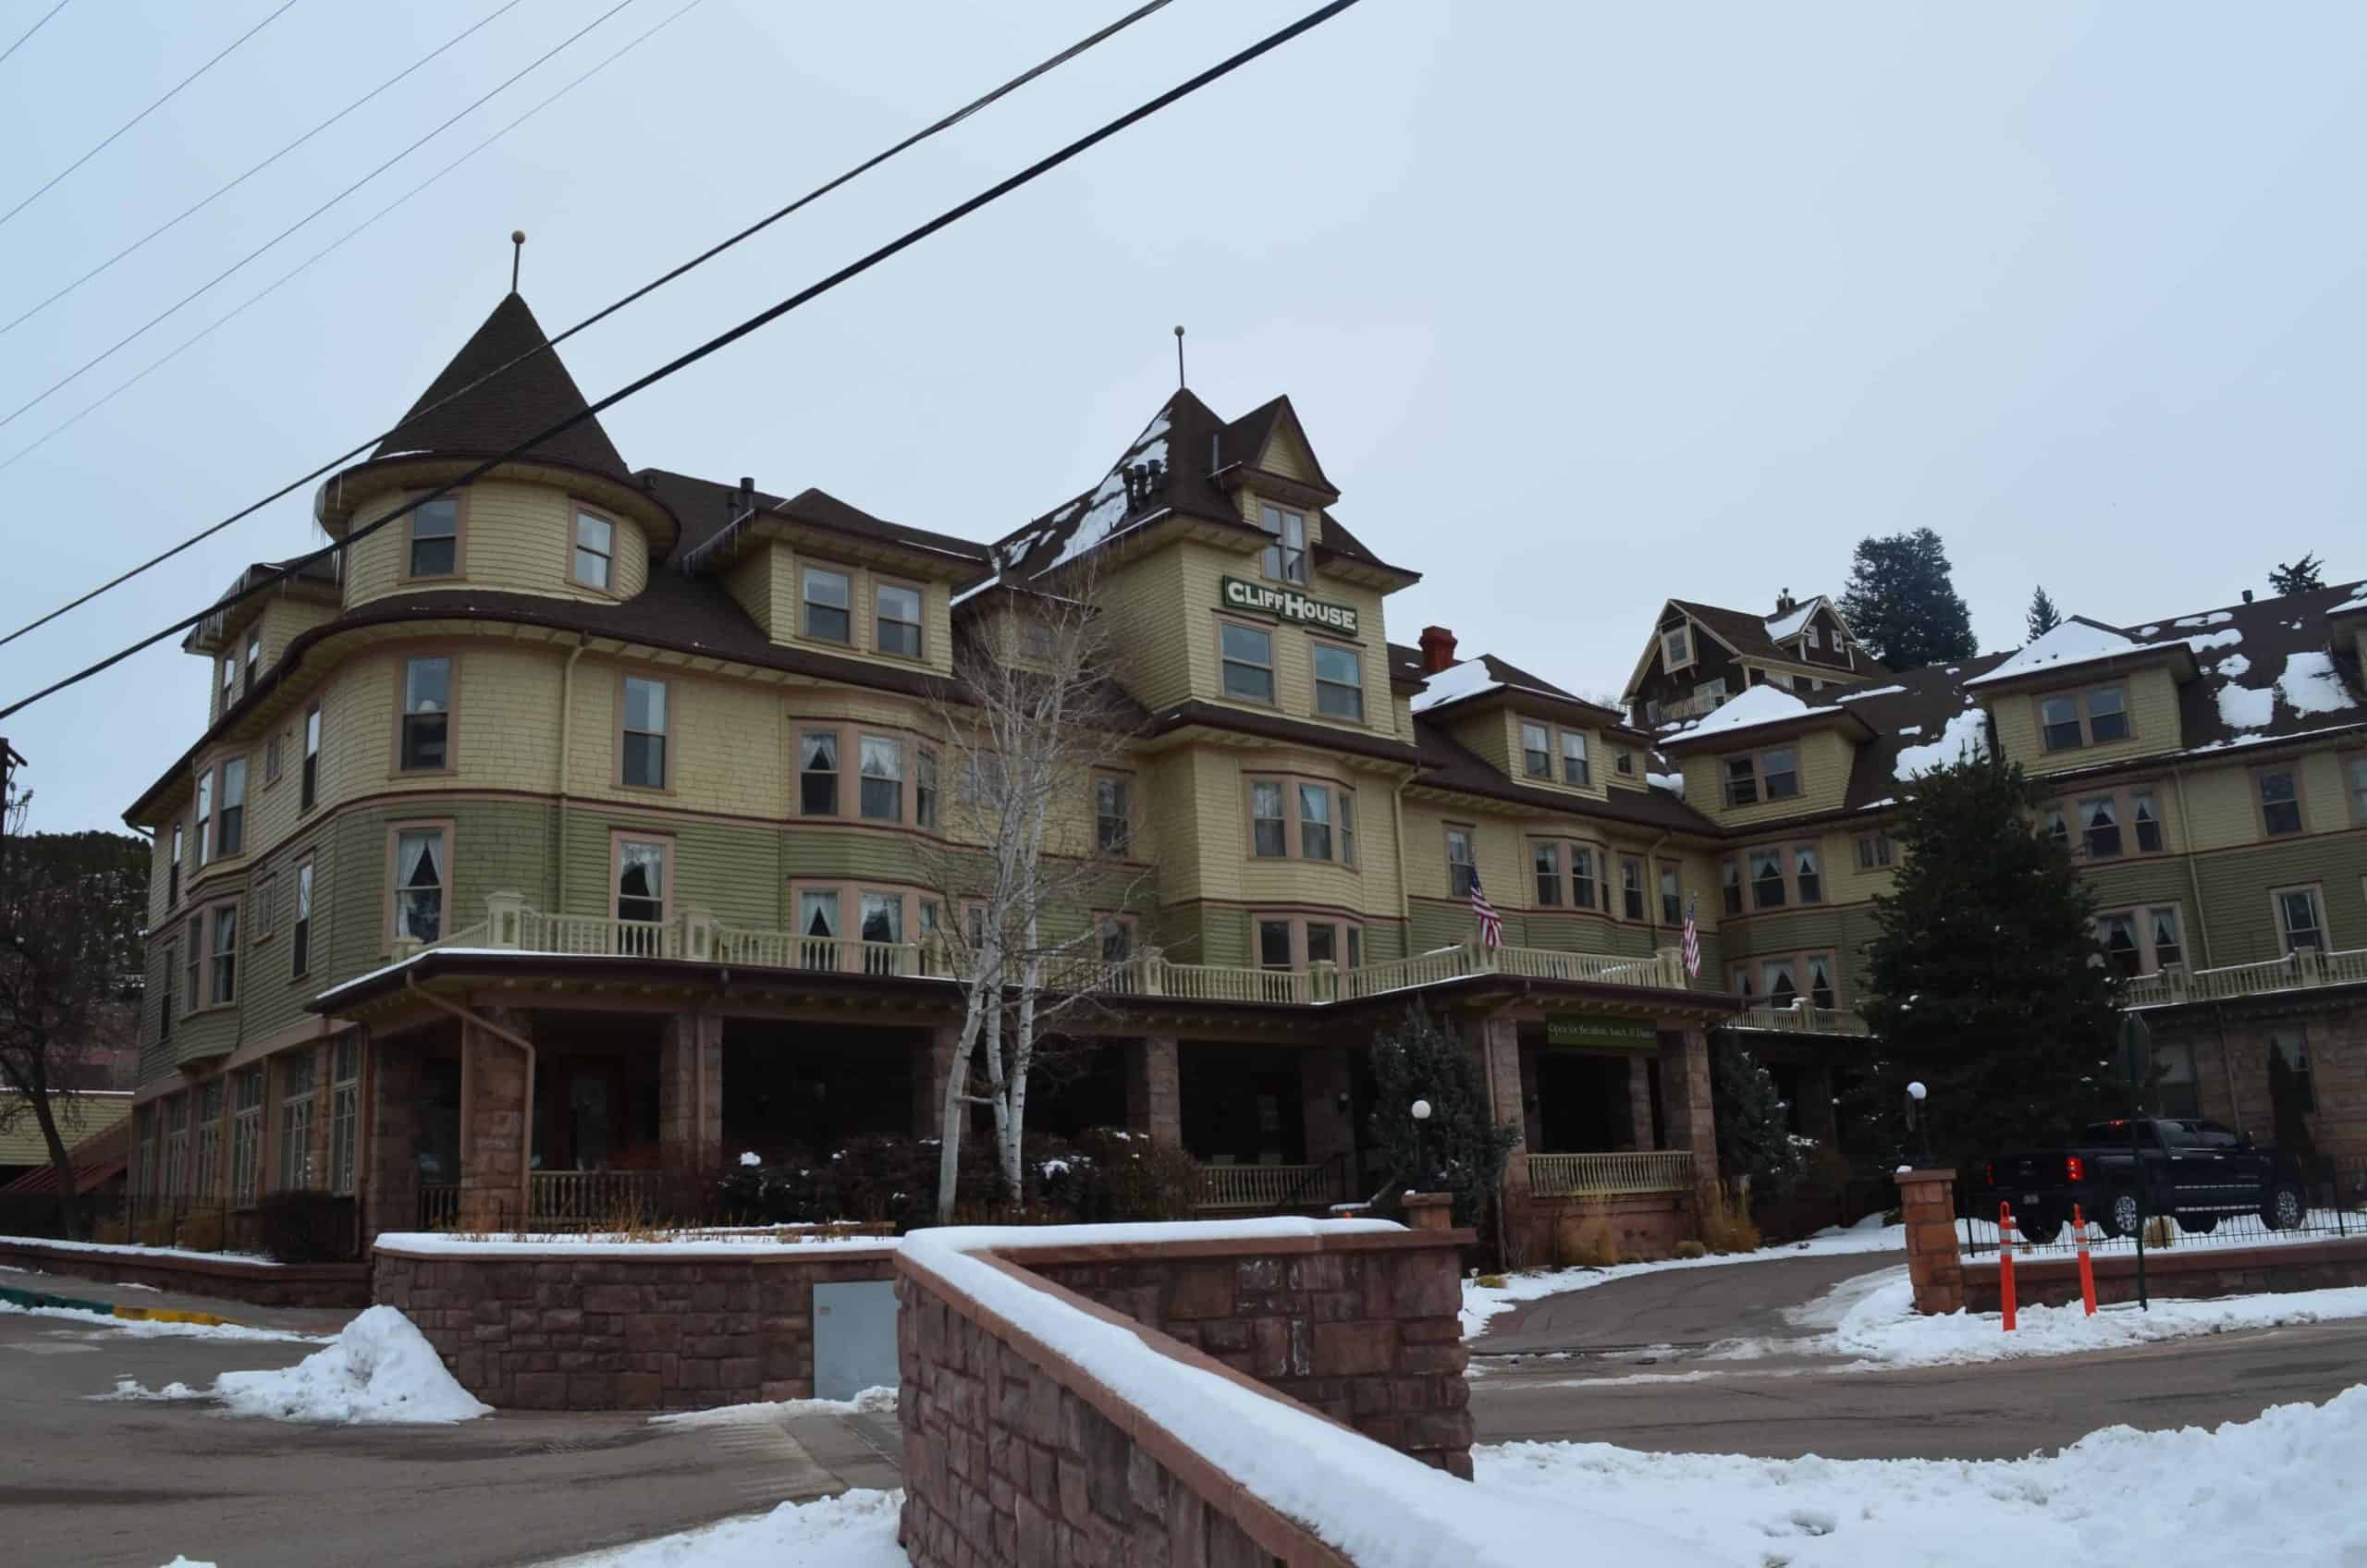 The Cliff House at Pikes Peak